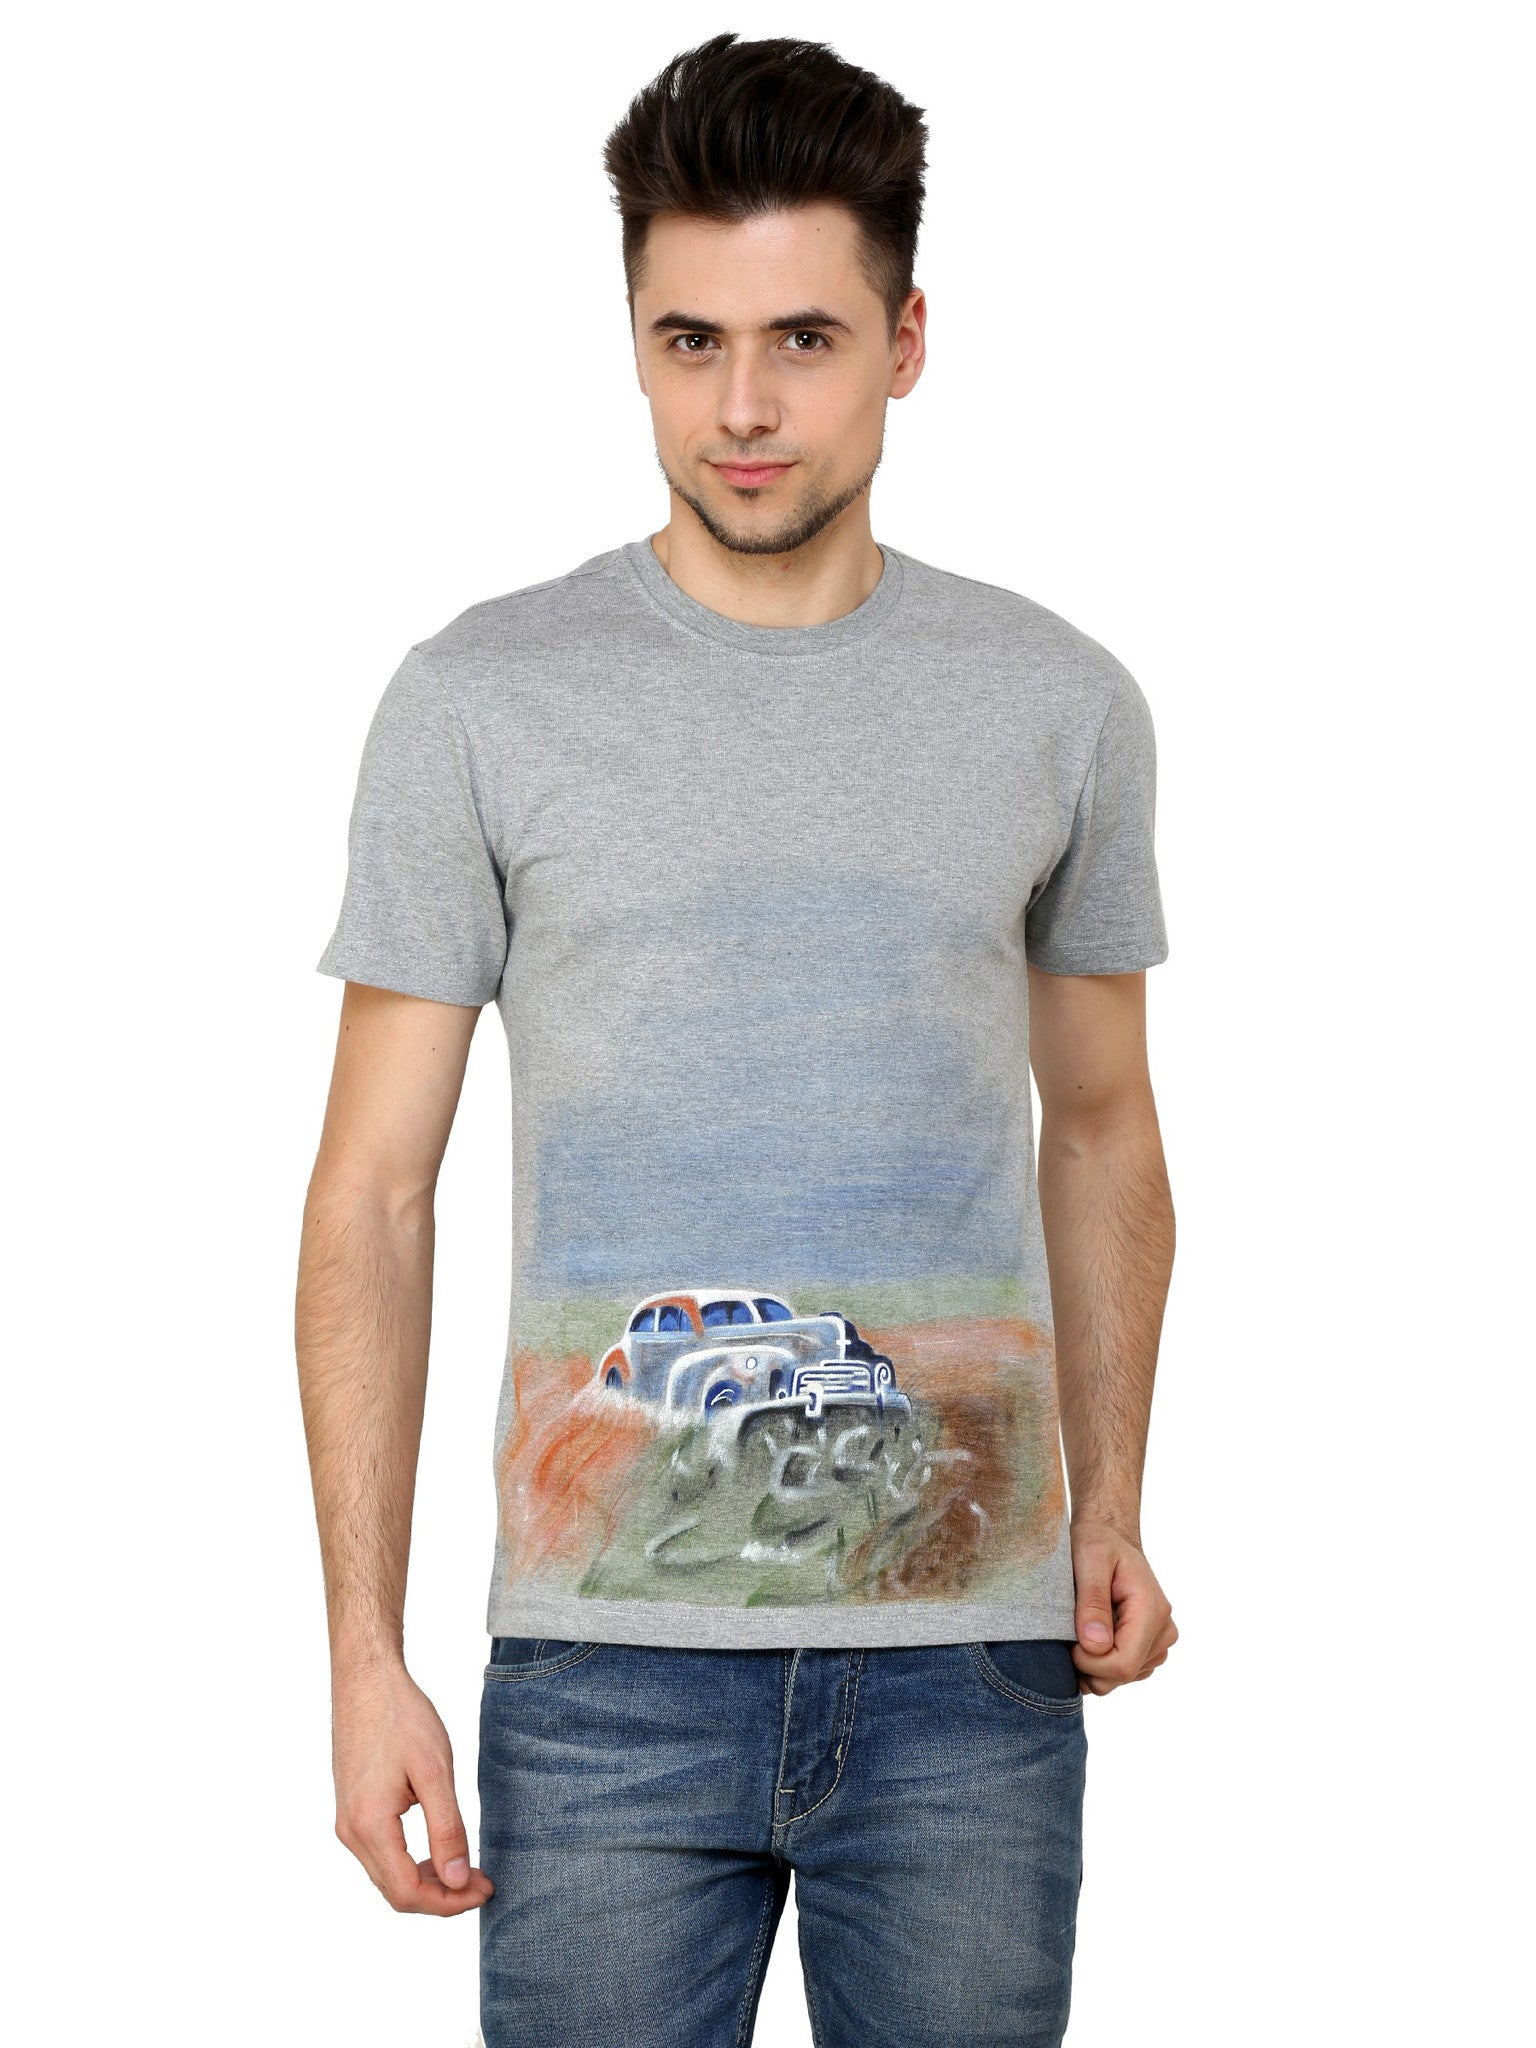 Hand-painted Vintage Car Grey T-shirt - Rang Rage  - 1